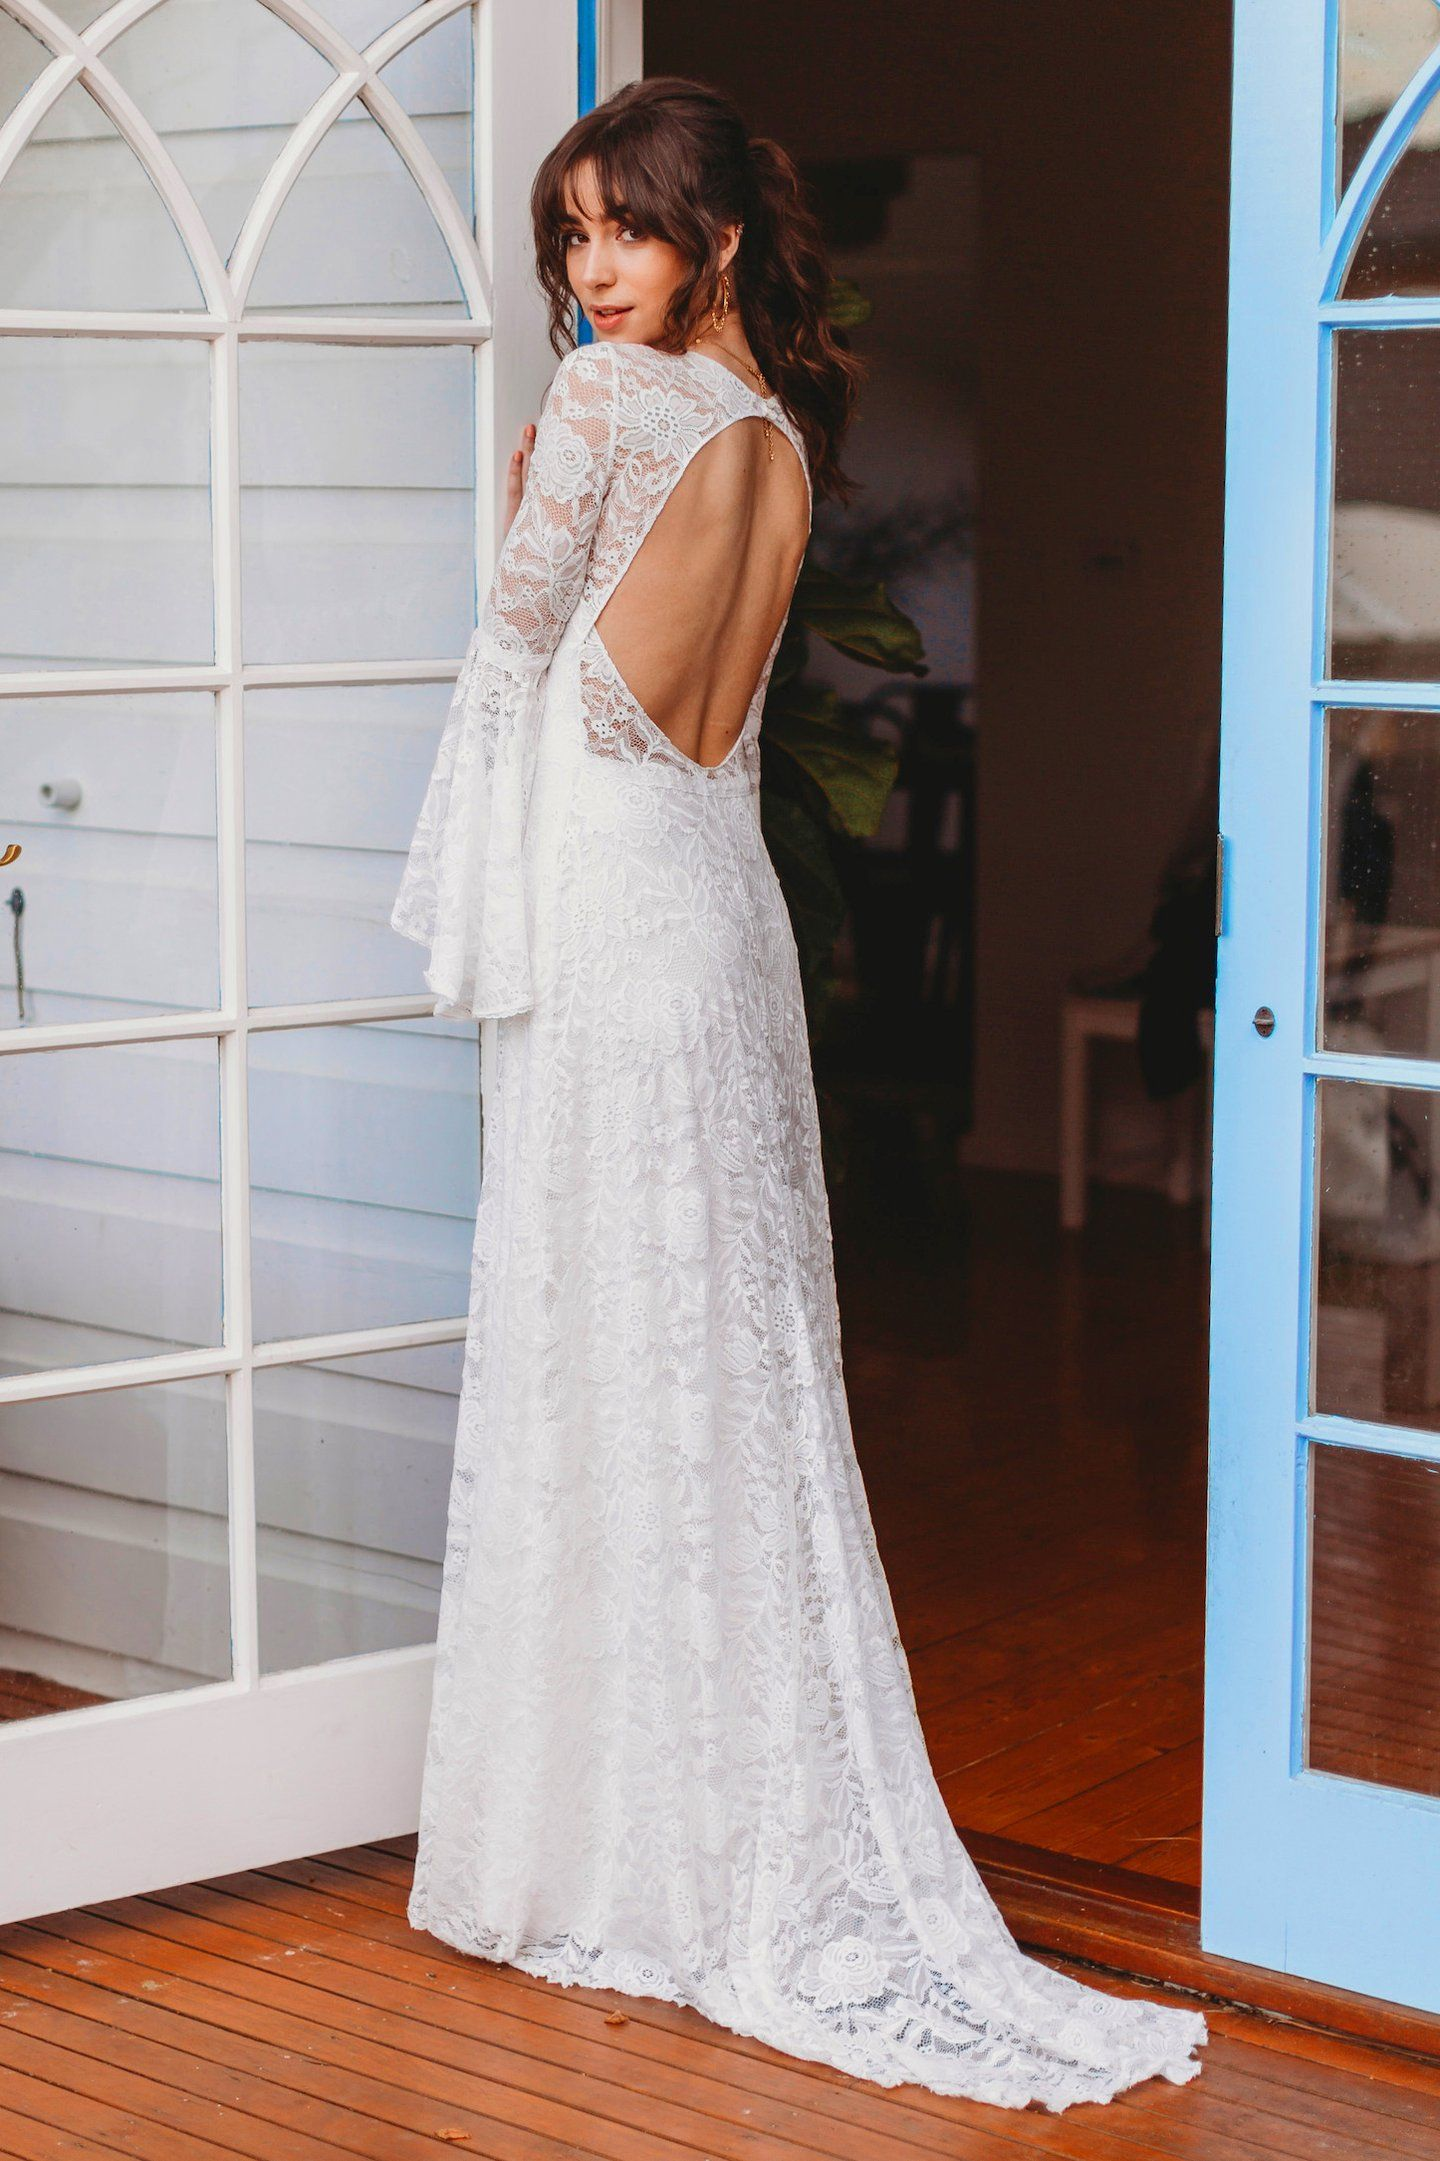 Joni sukienki pinterest wedding dresses s wedding dress and